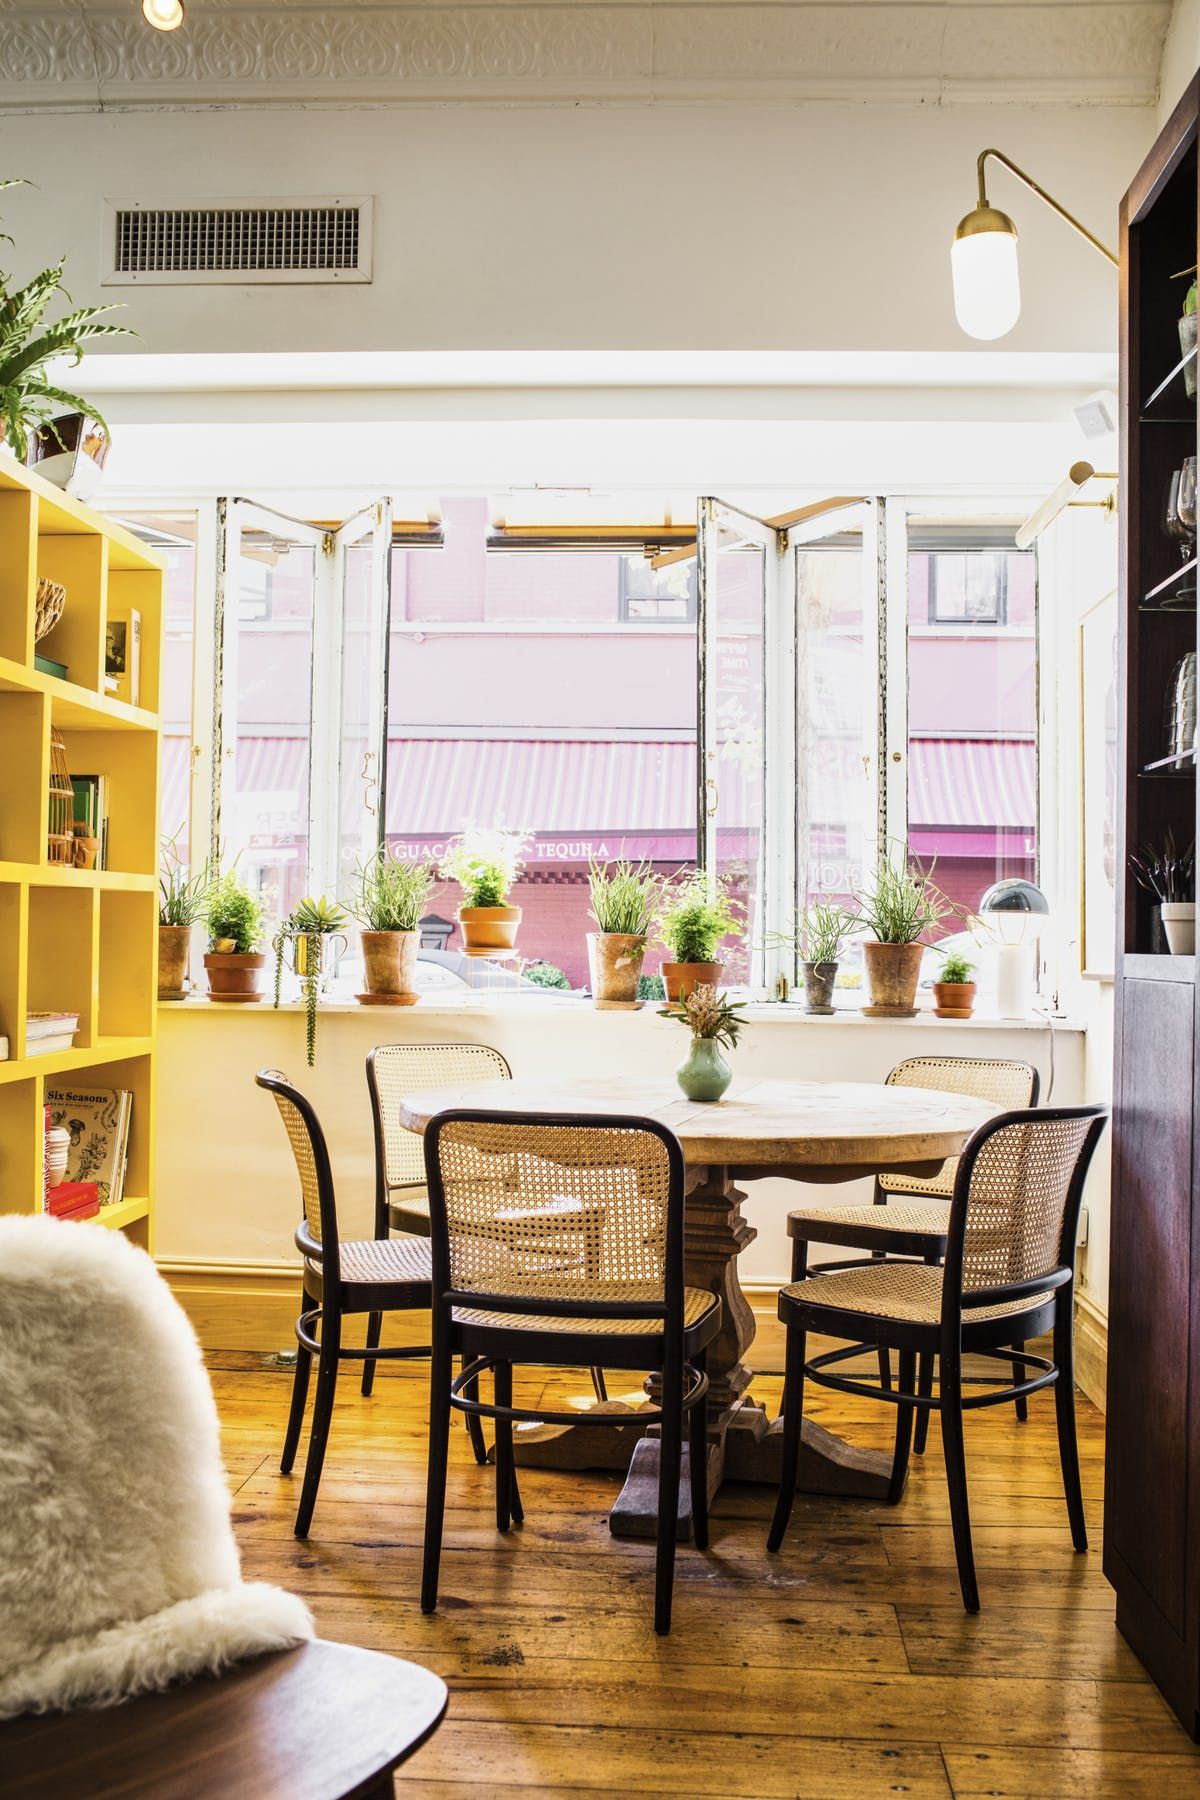 Fairfax, West Village, New York City | Places to Go Eat in NYC ...